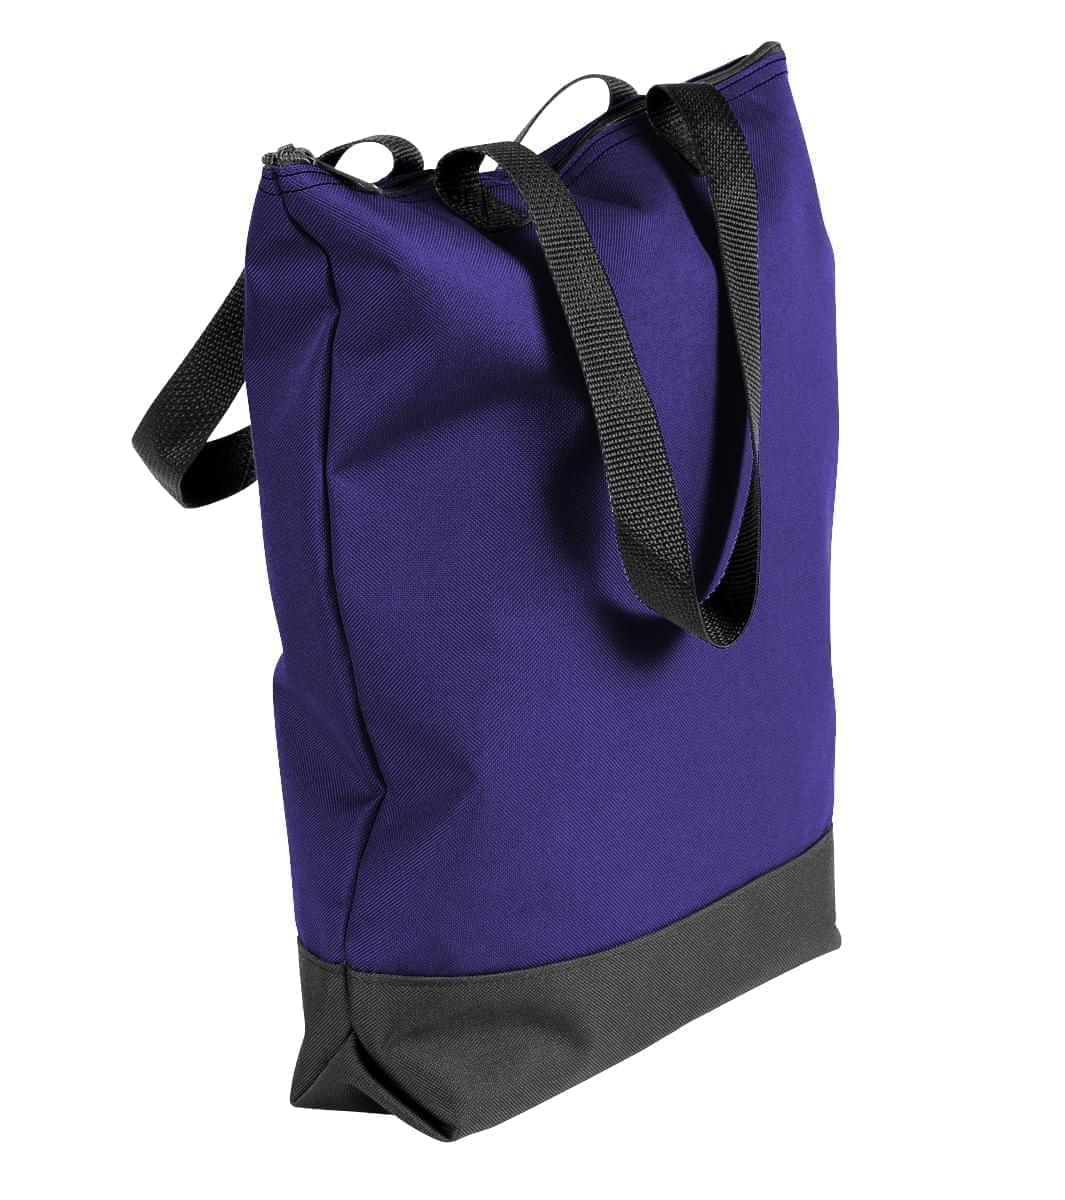 USA Made Poly Notebook Tote Bags, Purple-Black, 1AAMX1UAYR